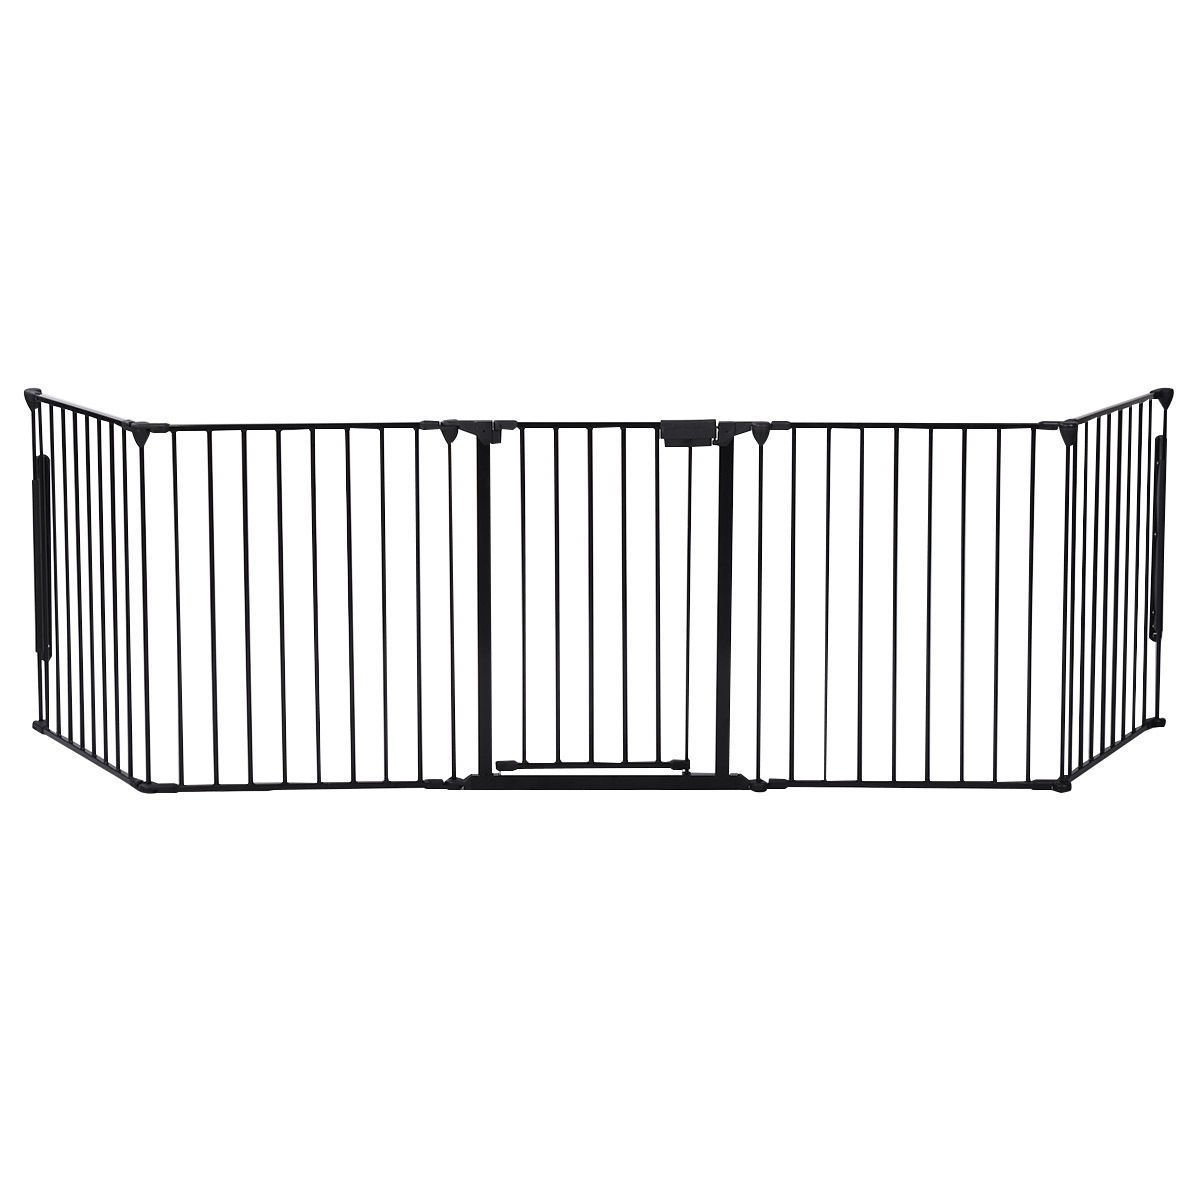 Gate BBQ Metal Fire Rail fireplace Baby Metal Fire child Toddler Guard Pet Dog Cat Panel Prevent